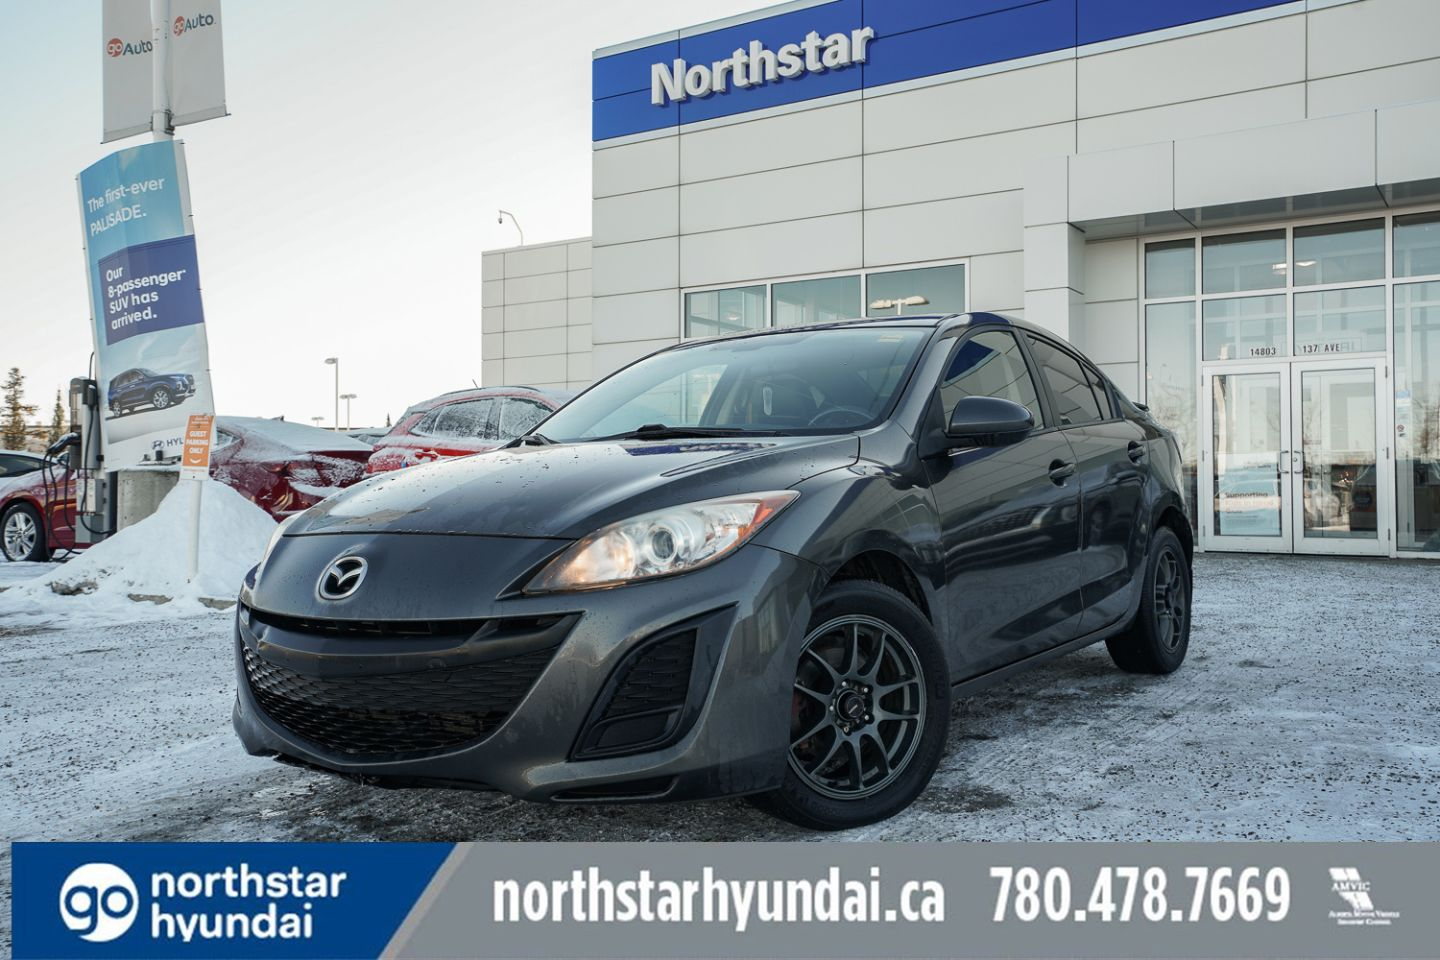 2011 Mazda Mazda3 GS for sale in Edmonton, Alberta